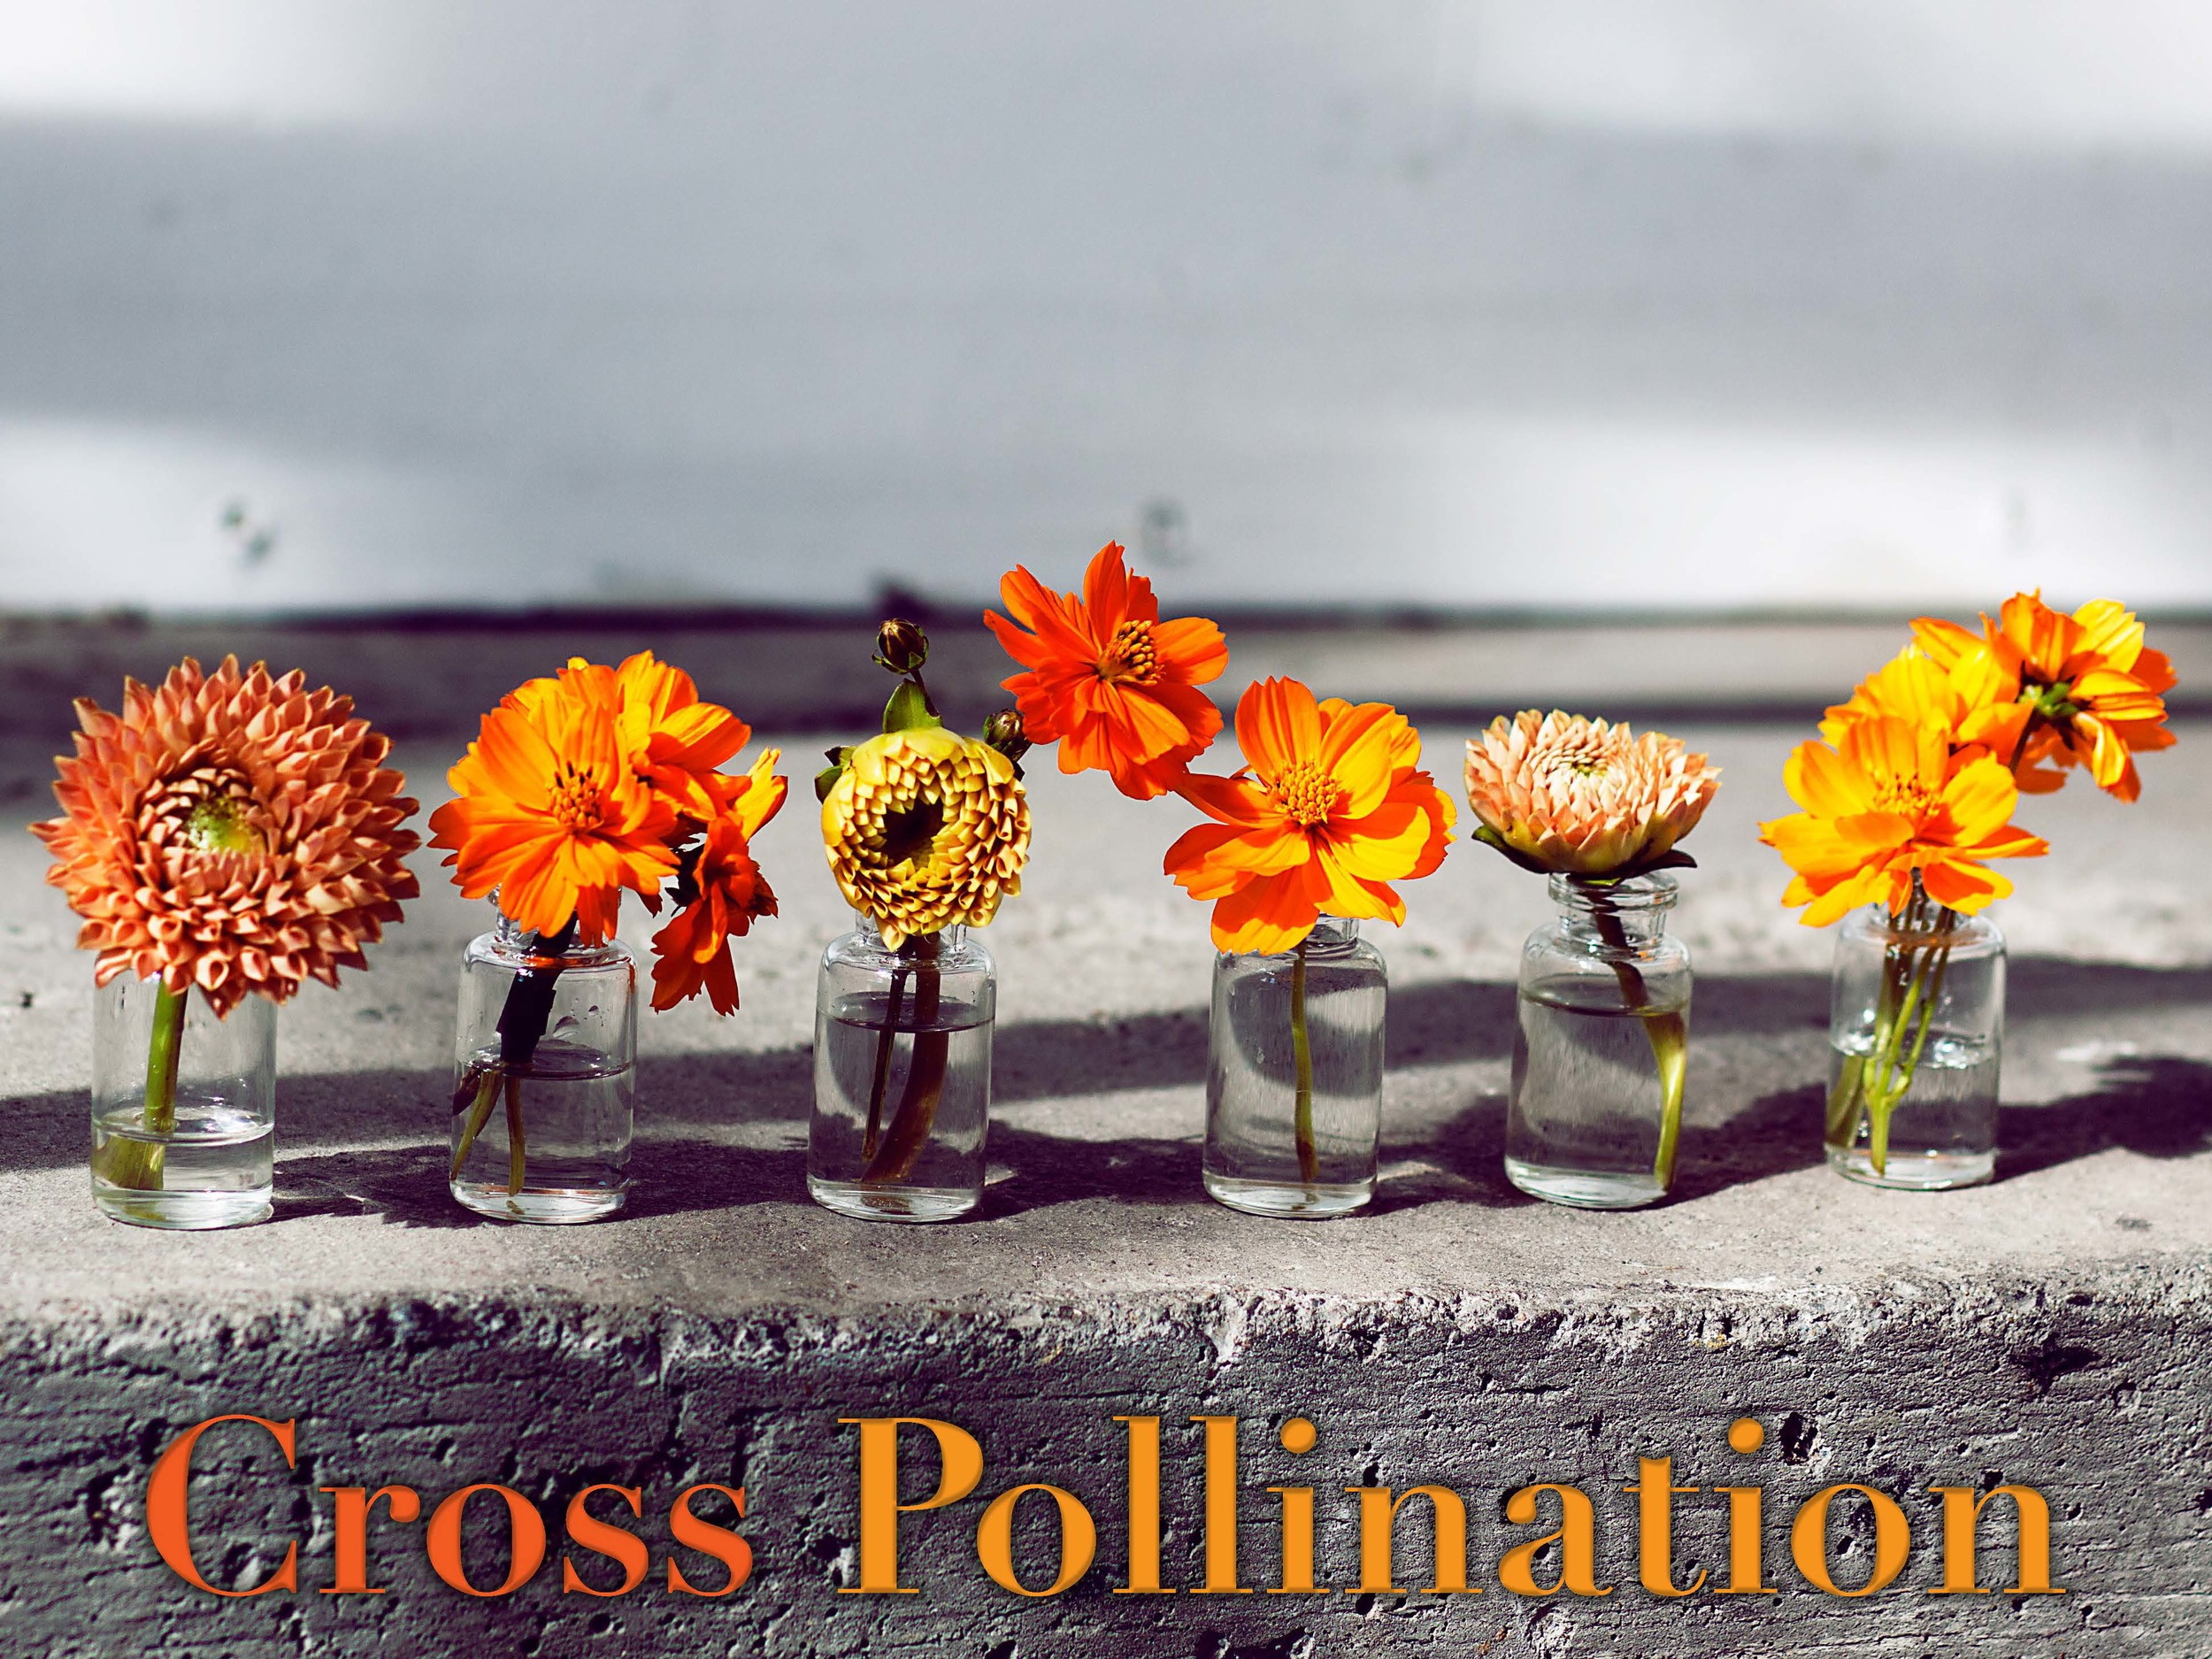 The_Thinkery_Cross_Pollination_Page_1.jpg